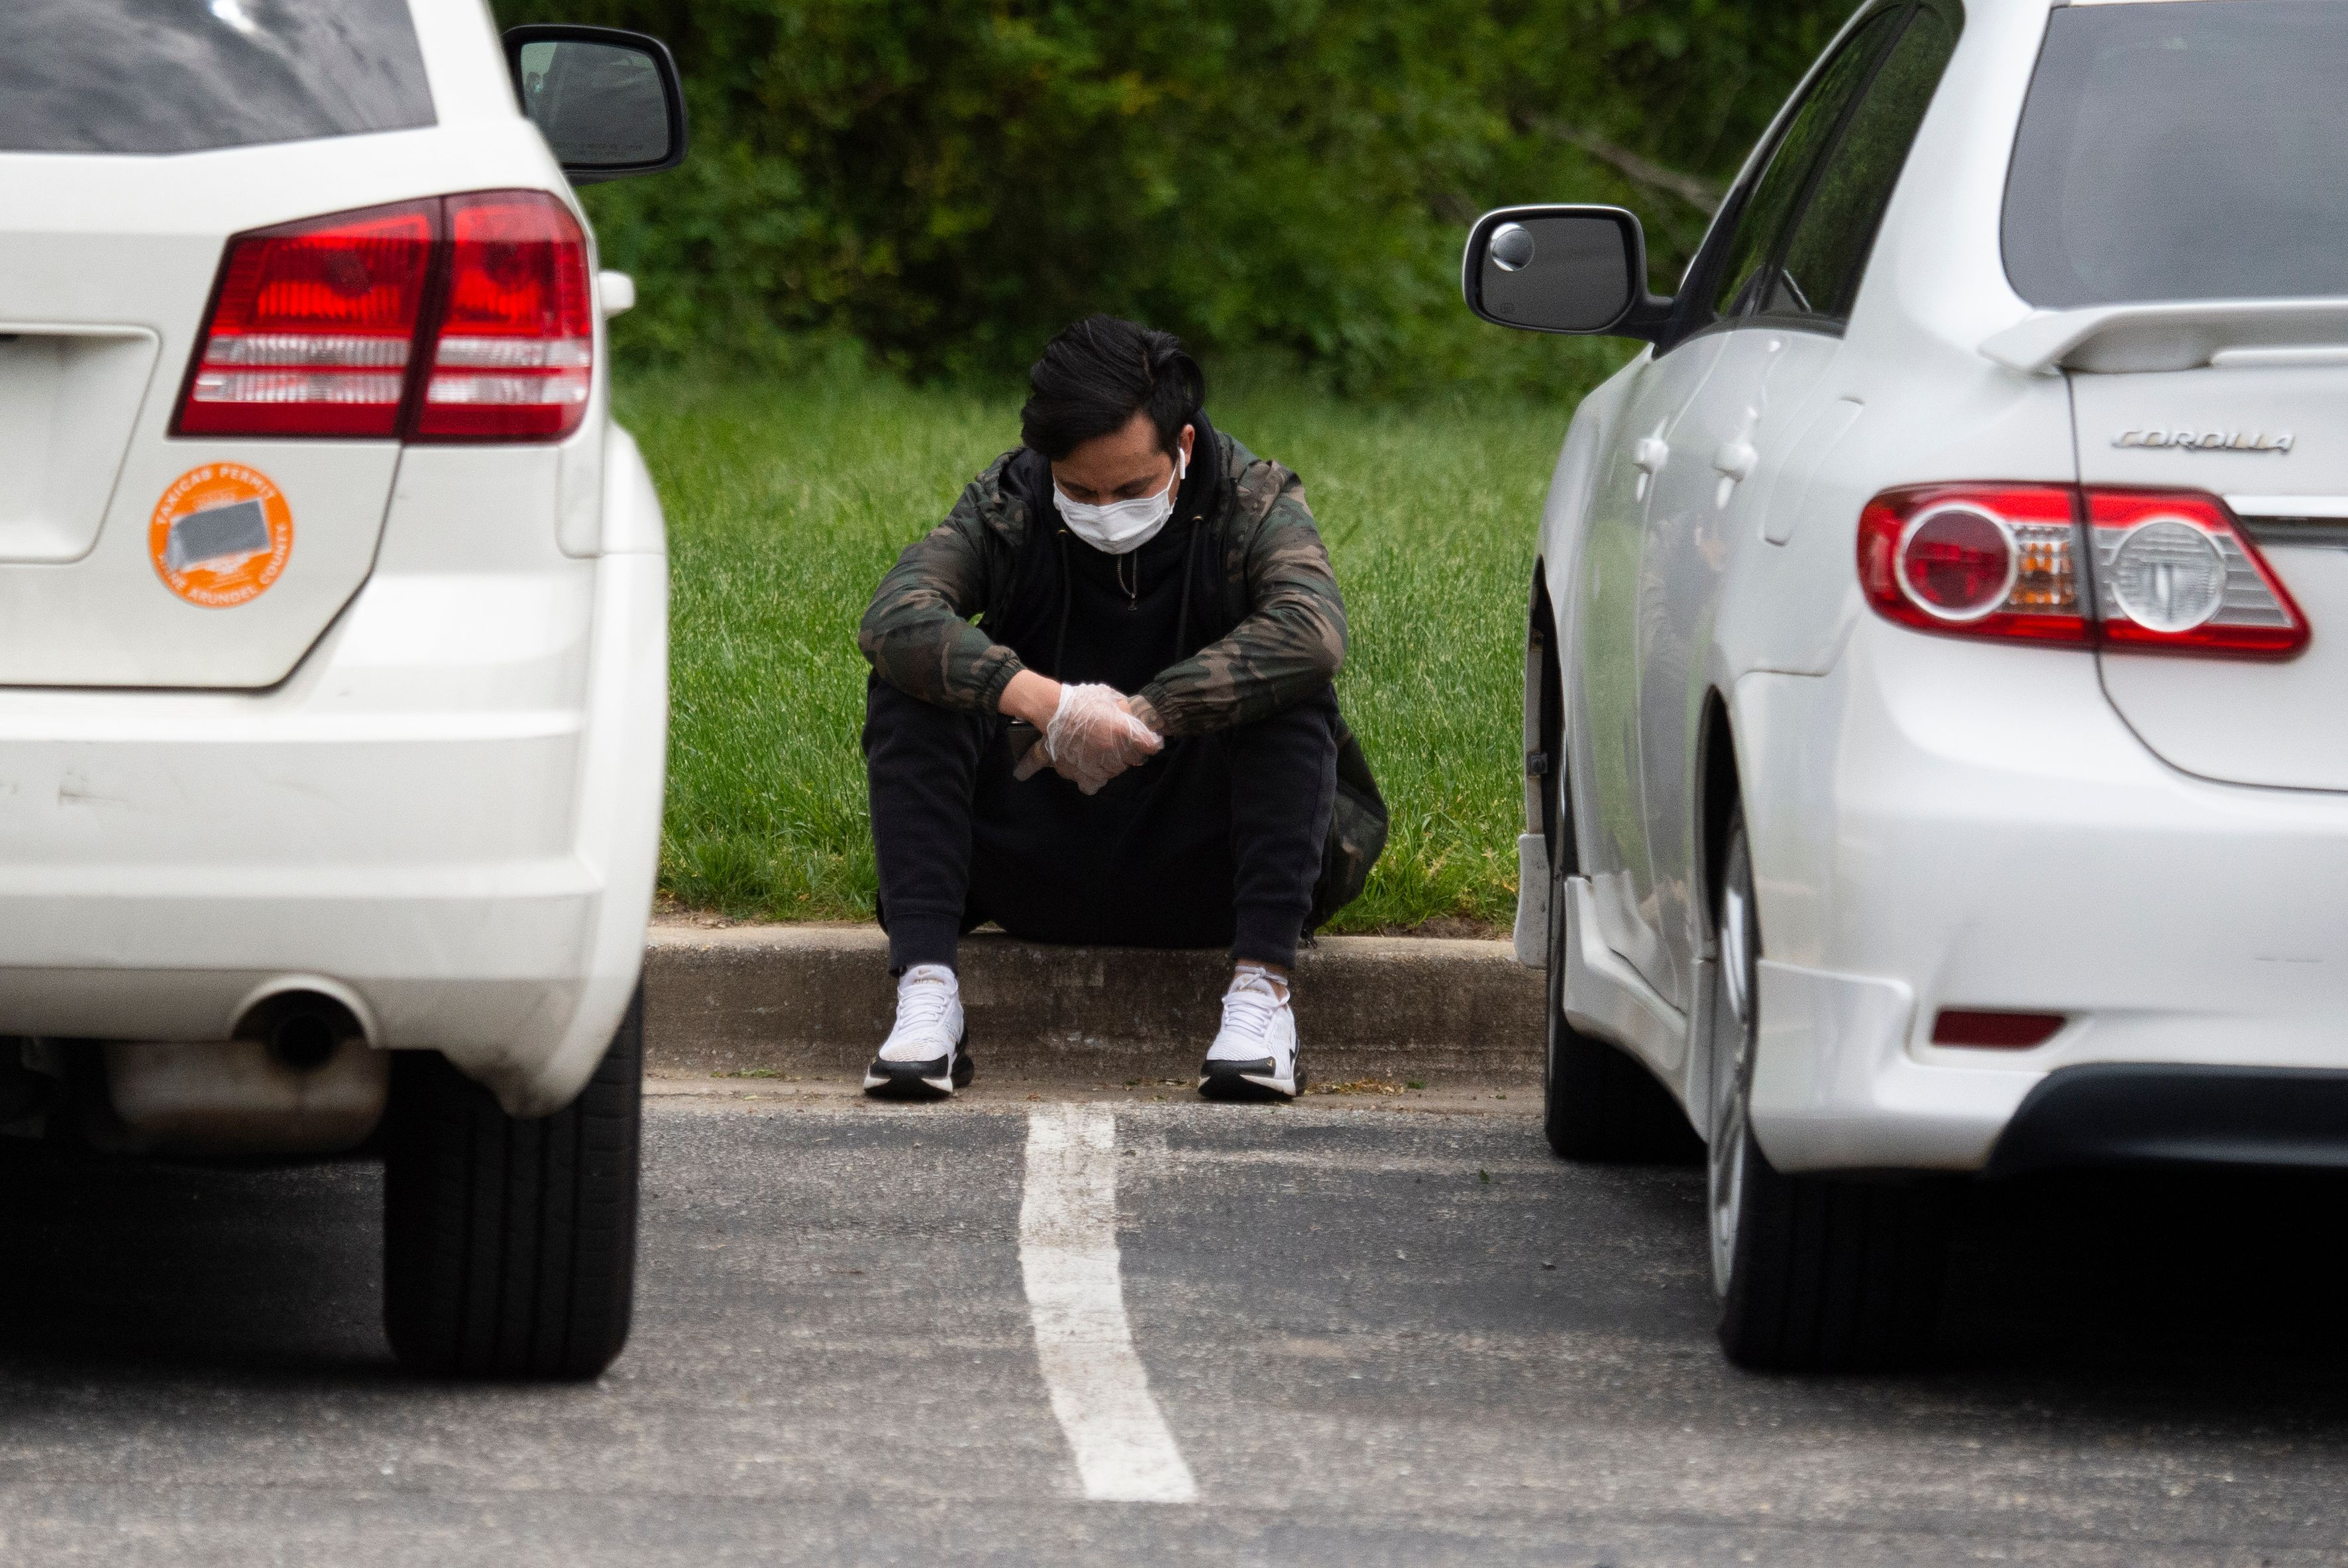 A mourner from the Nepali community, unable to attend the funeral for Ashish KC due to social distancing restrictions, reacts in the parking lot outside of the Maryland Cremation services in Millersville, Maryland on May 20, 2020. - Ashish died in a drowning but due to restrictions in place amid the novel coronavirus pandemic, only eight close family members and friends were allowed to attend the ceremony inside, while more then 30 waited outside. Mourners inside live streamed the funeral to family back in Nepal and to those waiting just outside. The coronavirus pandemic has drastically altered the way we are able to mourn and say goodbye to loved ones. (Photo by ANDREW CABALLERO-REYNOLDS / AFP) (Photo by ANDREW CABALLERO-REYNOLDS/AFP via Getty Images)